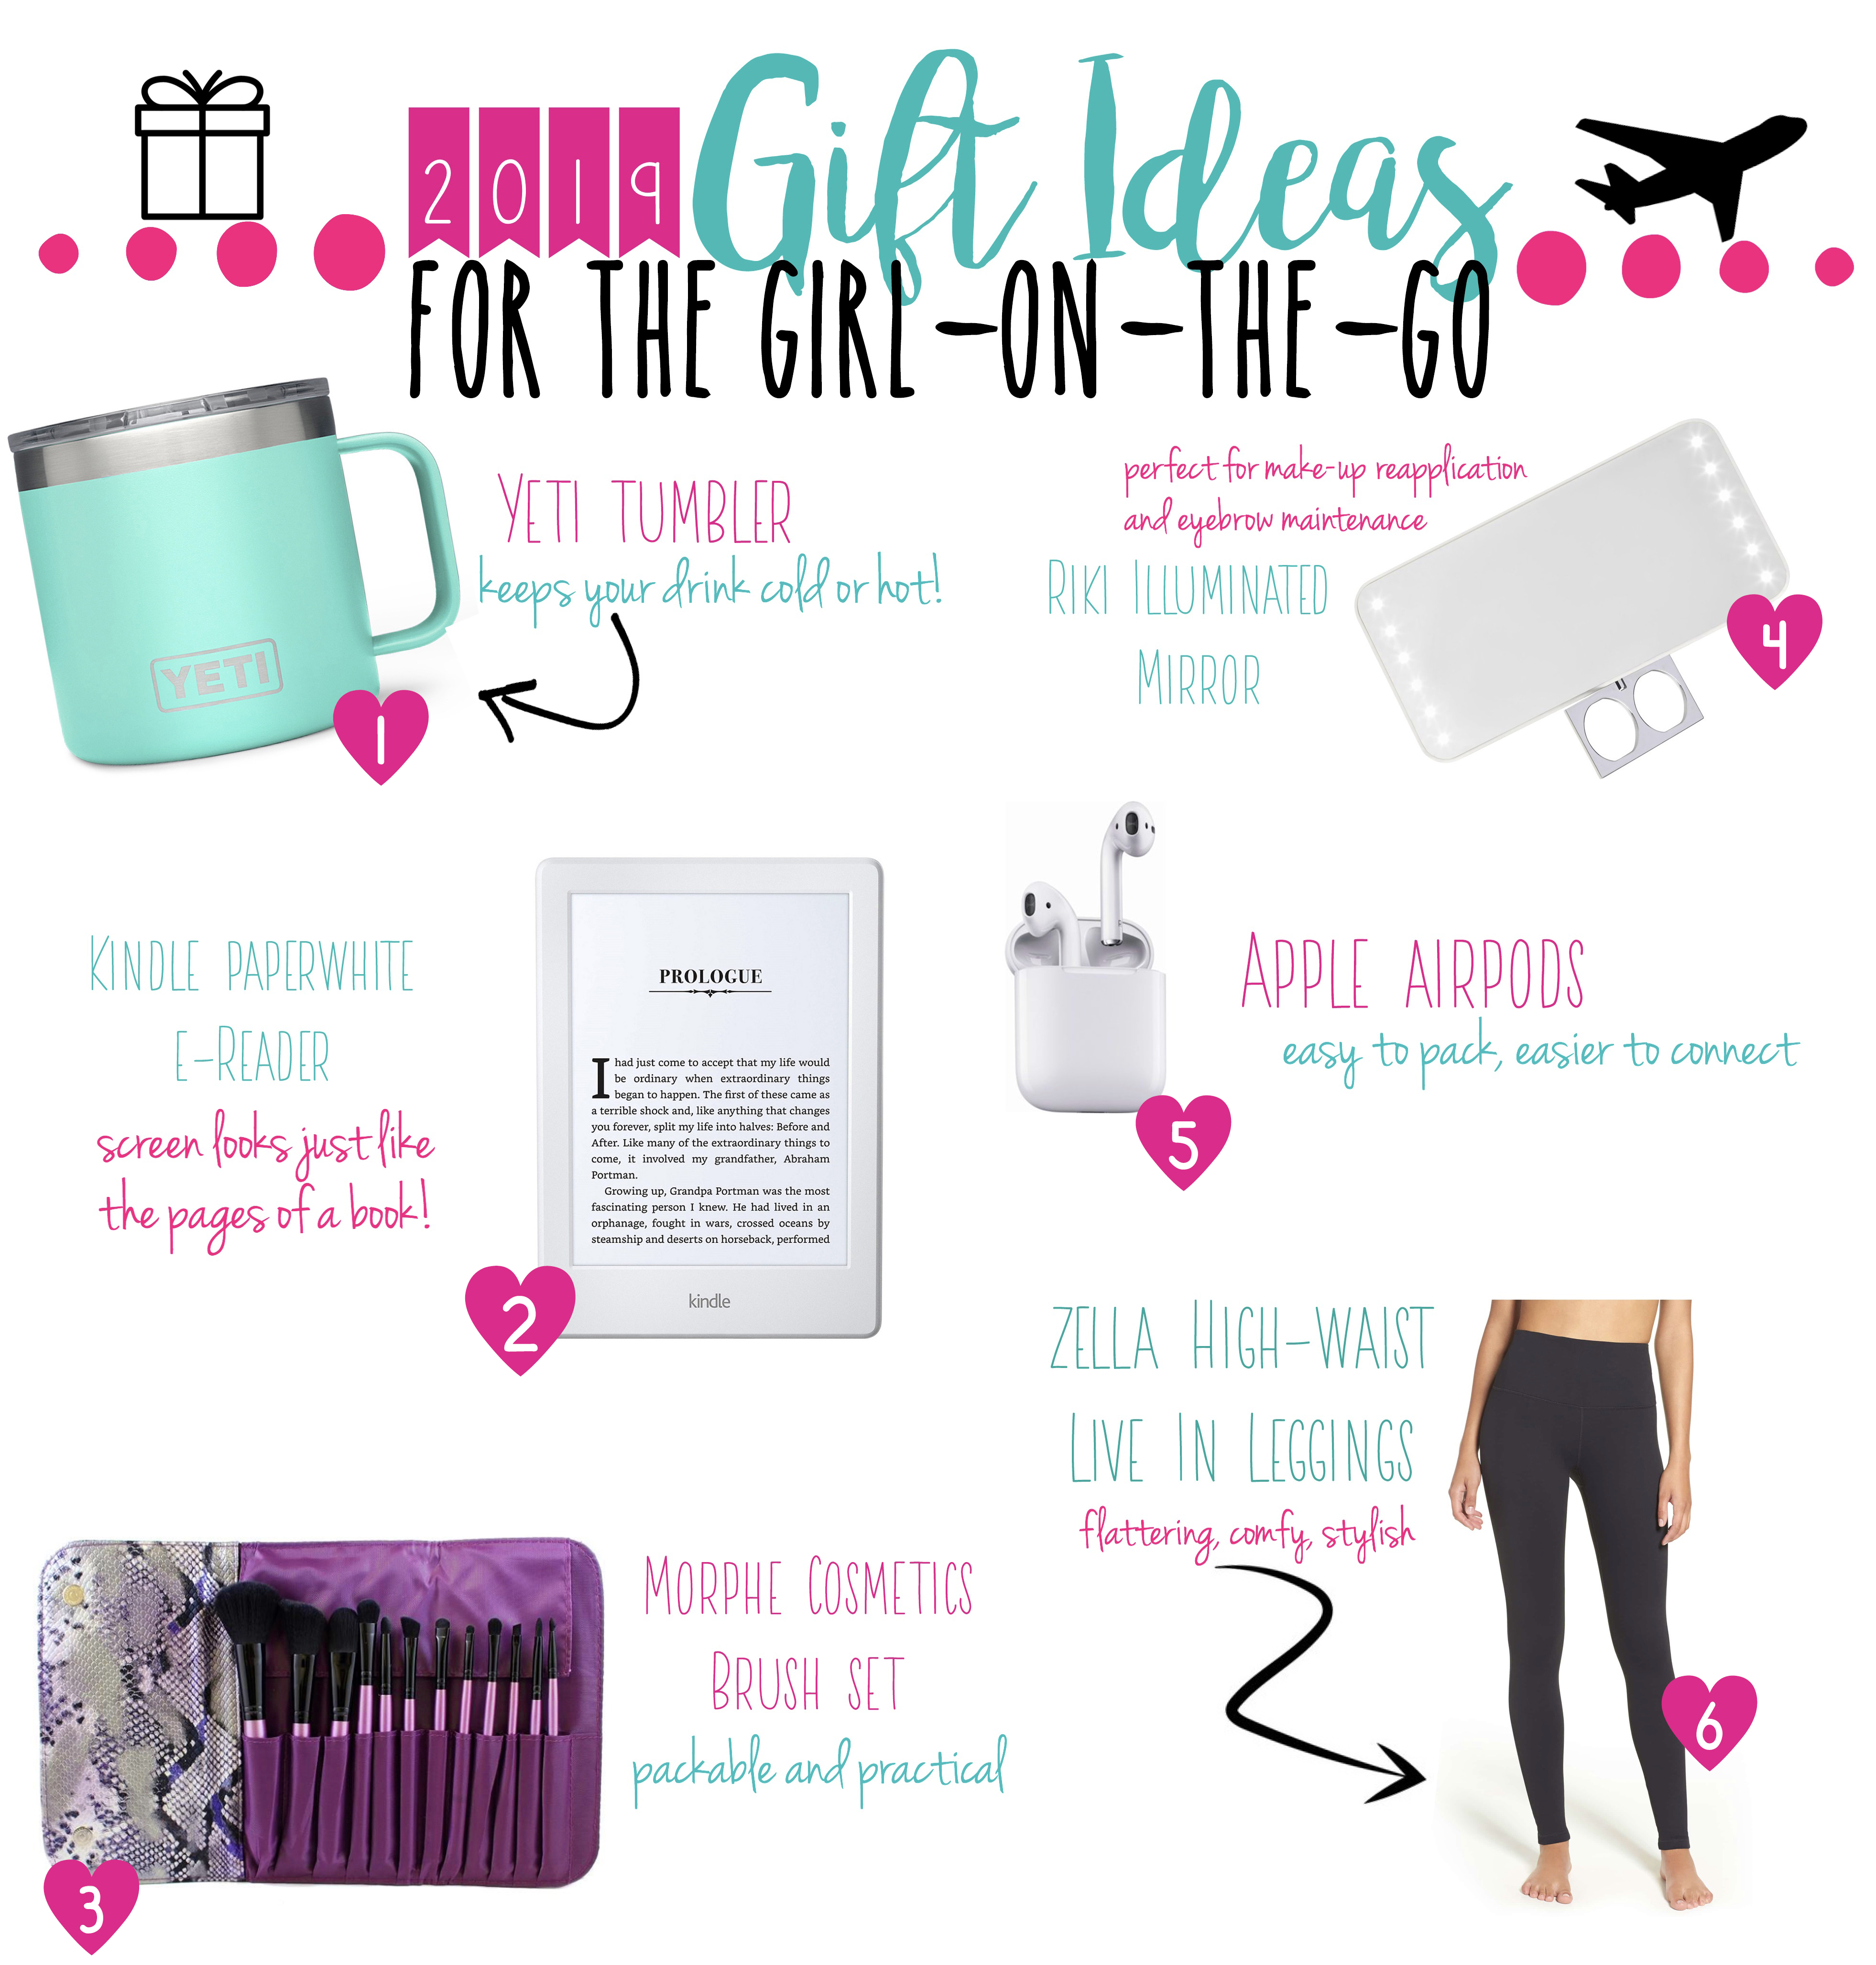 Christmas Gift Ideas For The Reader 2019 2019 Gift Ideas for the Girl on the Go   Adventure á la Mode